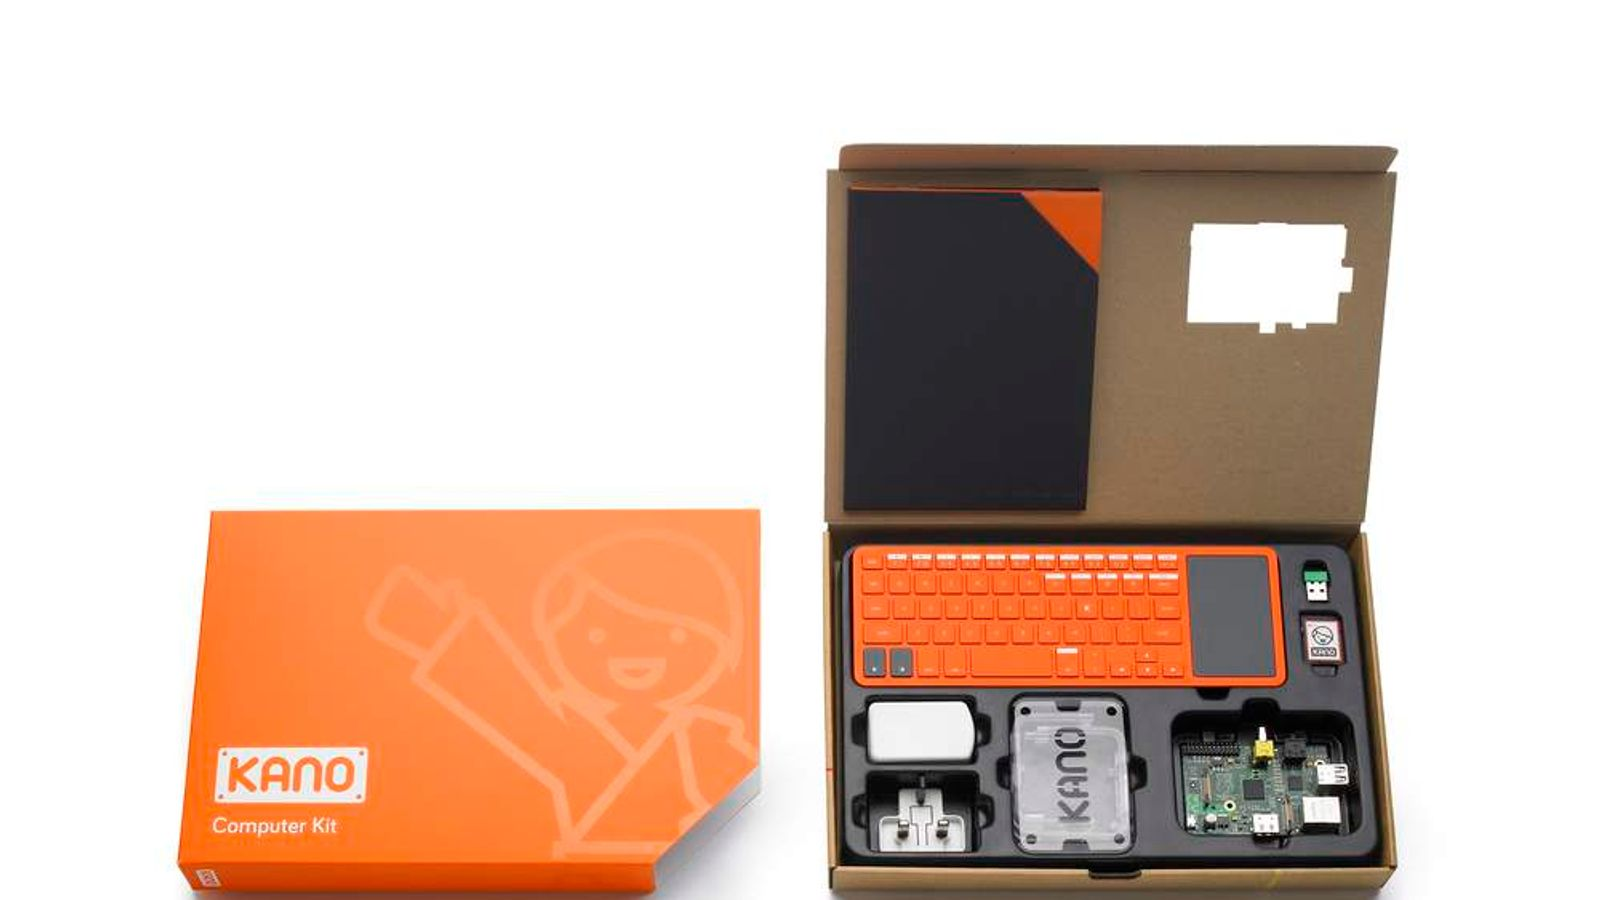 Kano Kit Open box